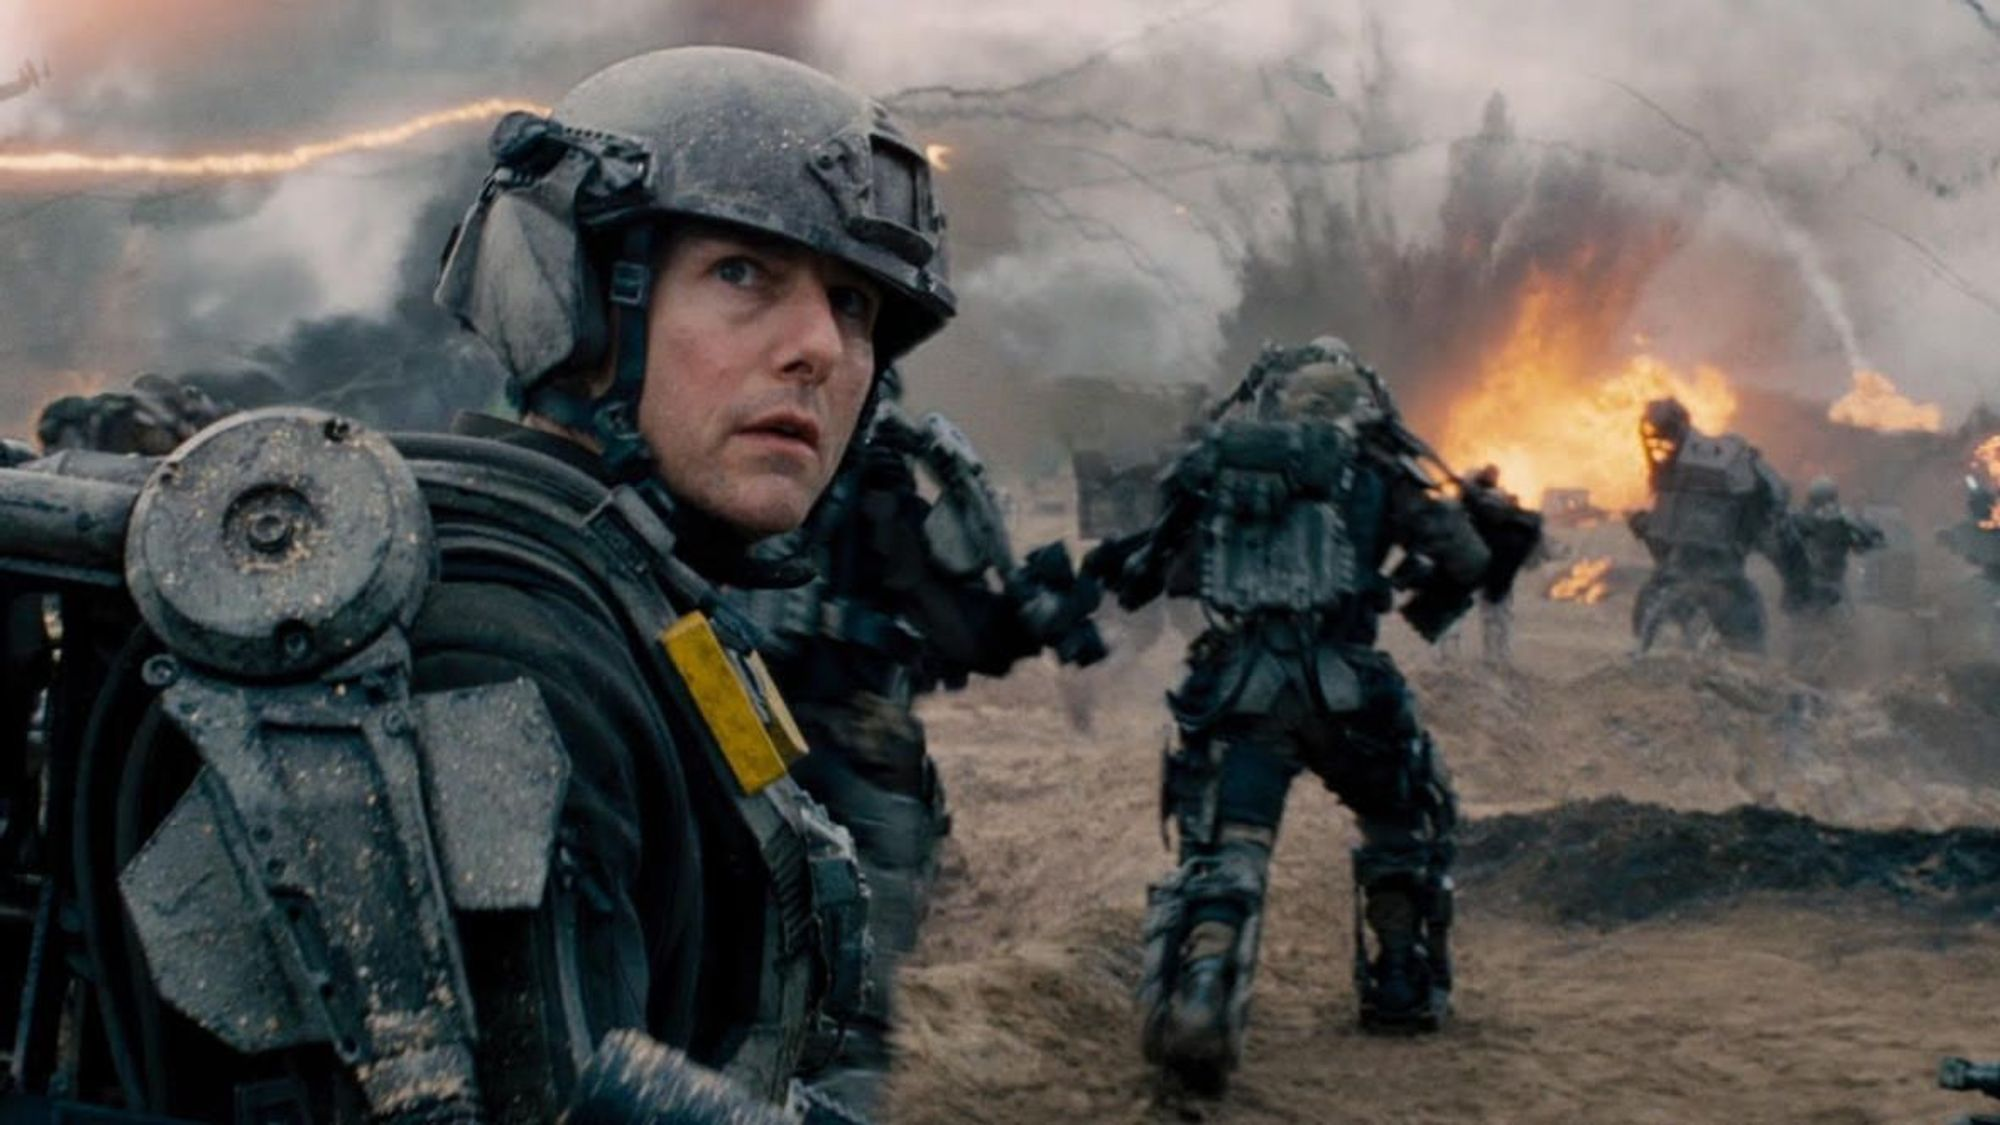 How to Watch Edge of Tomorrow on Netflix - Best VPNs To Use